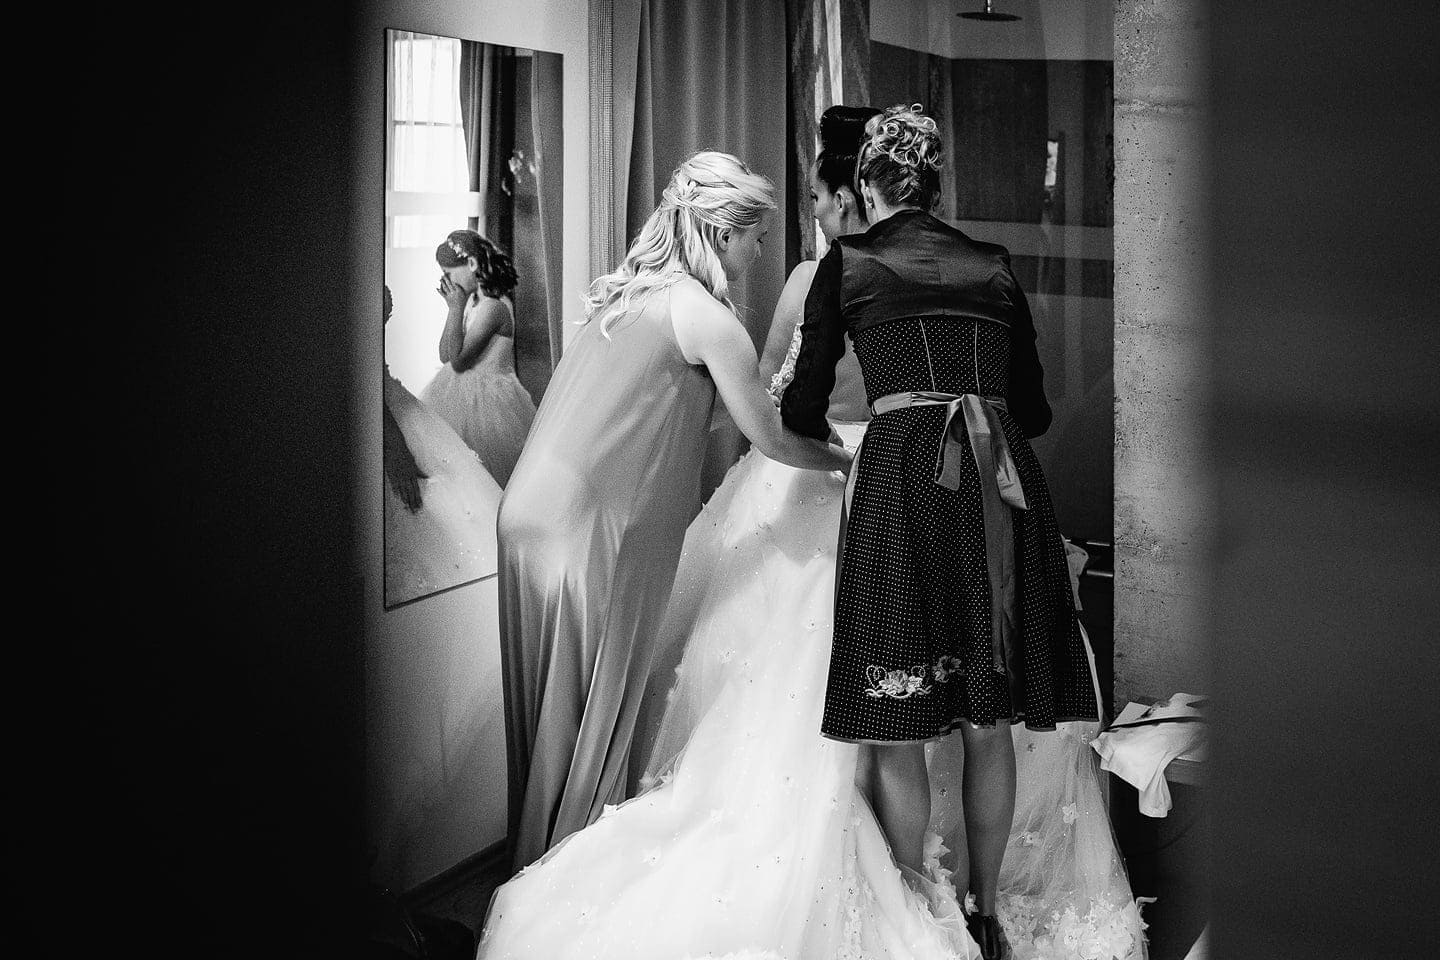 Best Of 2018 Wedding Photography by Aleks & Irena Kus 75